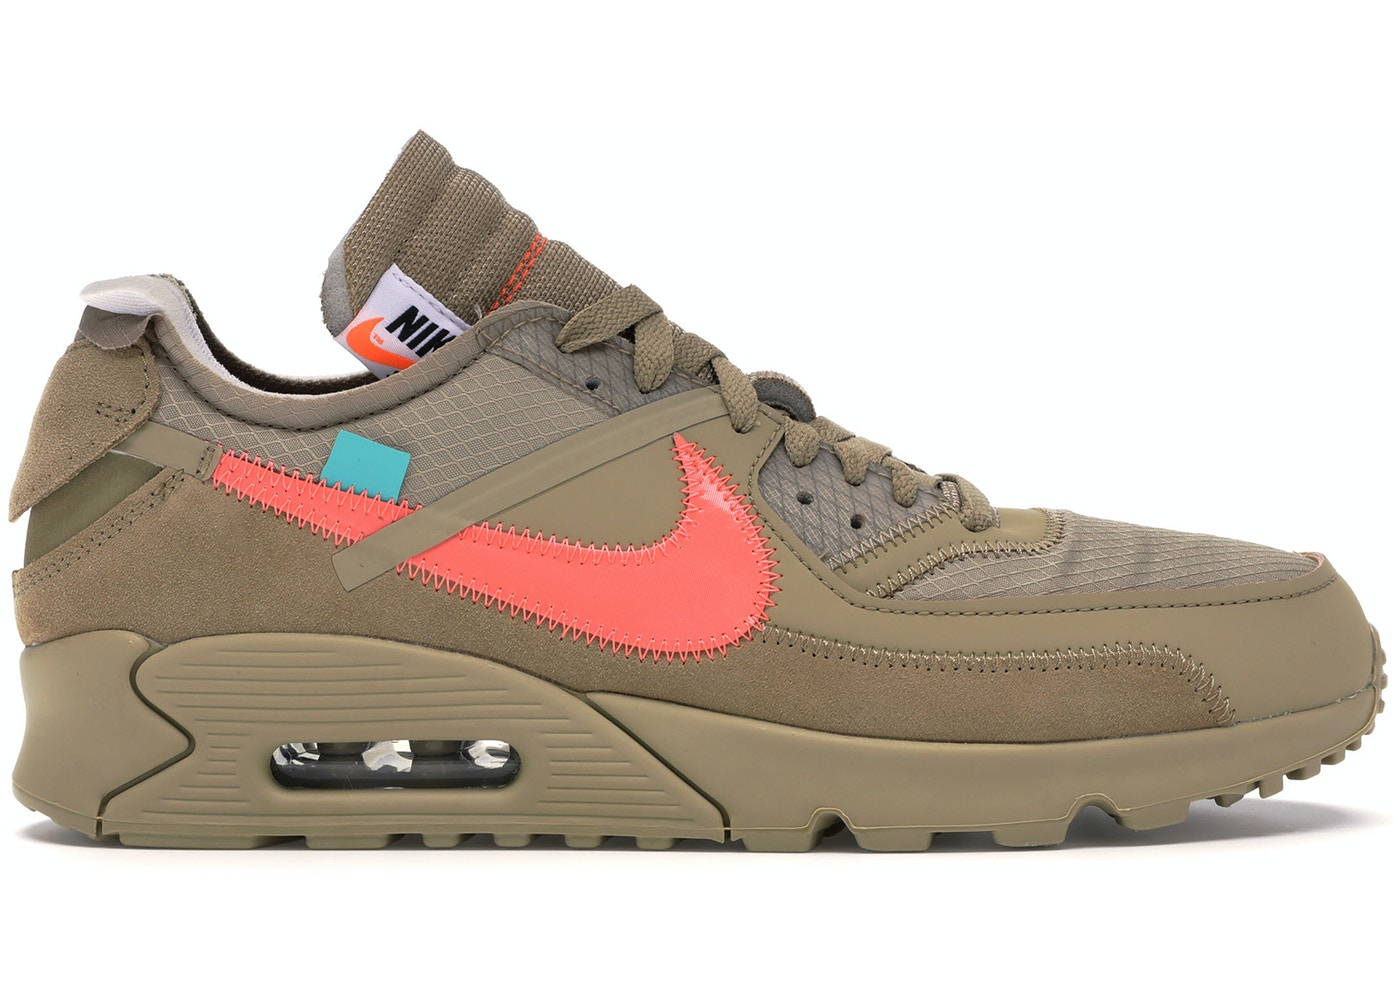 97e6d3a59f7 Air Max 90 OFF-WHITE Desert Ore - AA7293-200